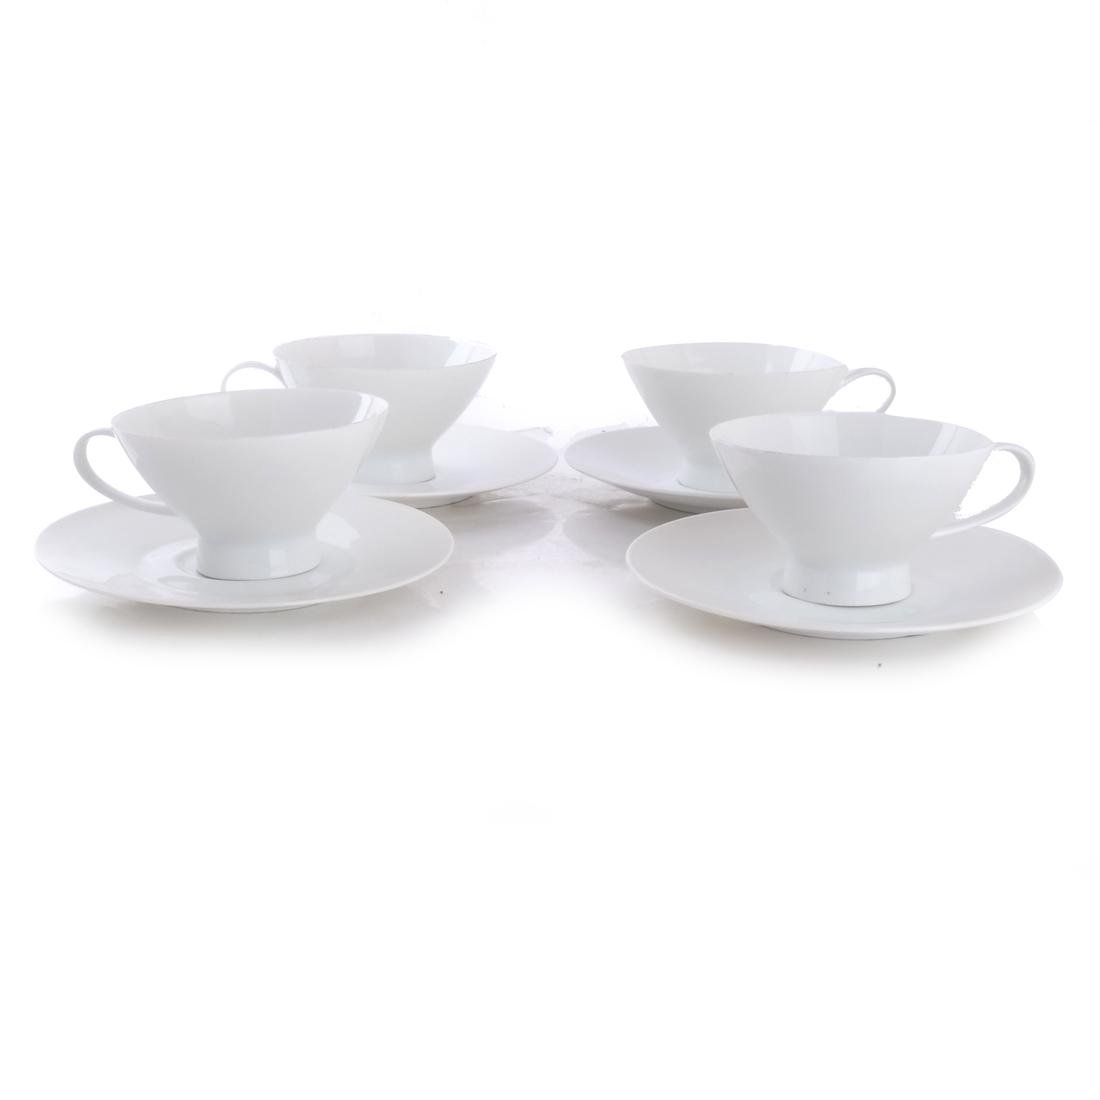 Raymond Lowery Design for Rosenthal, 15 Pieces - 4